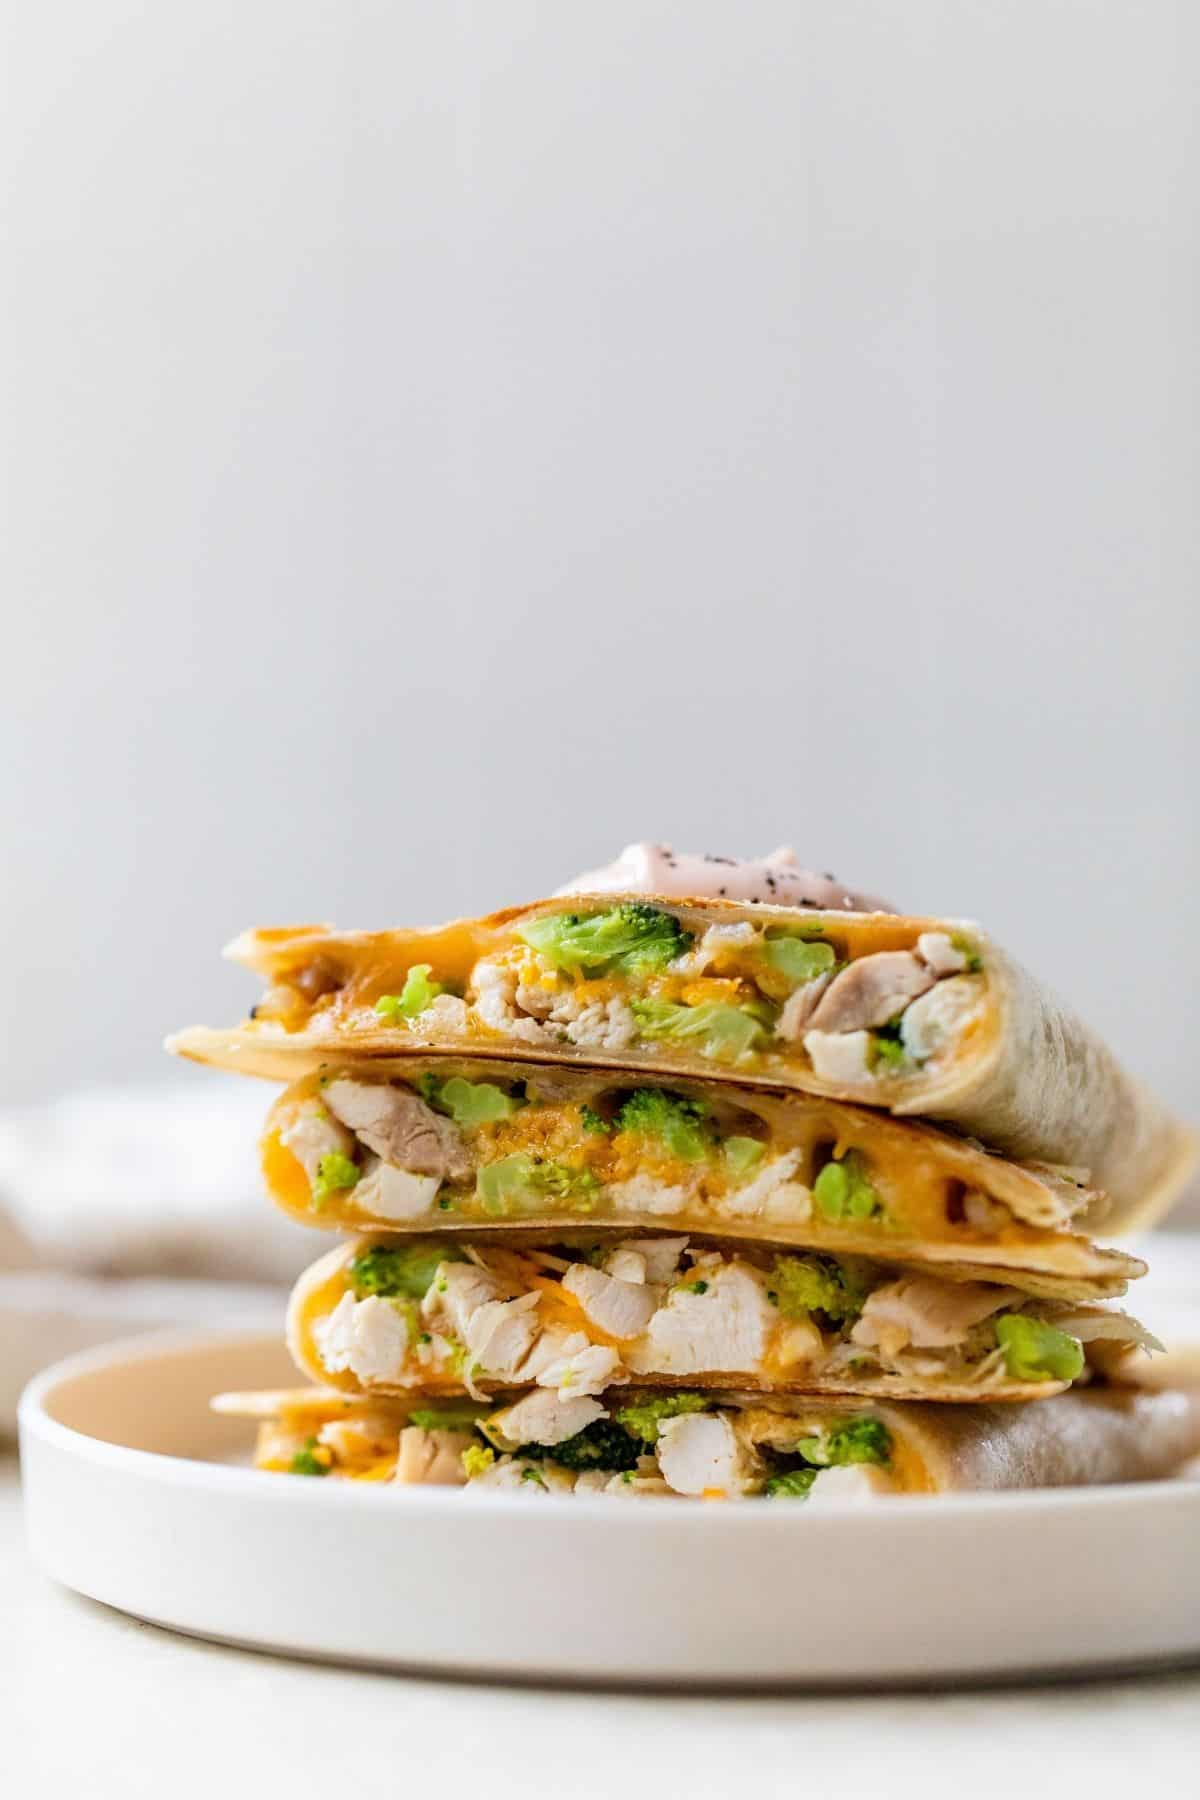 quesadillas stacked on top of one another